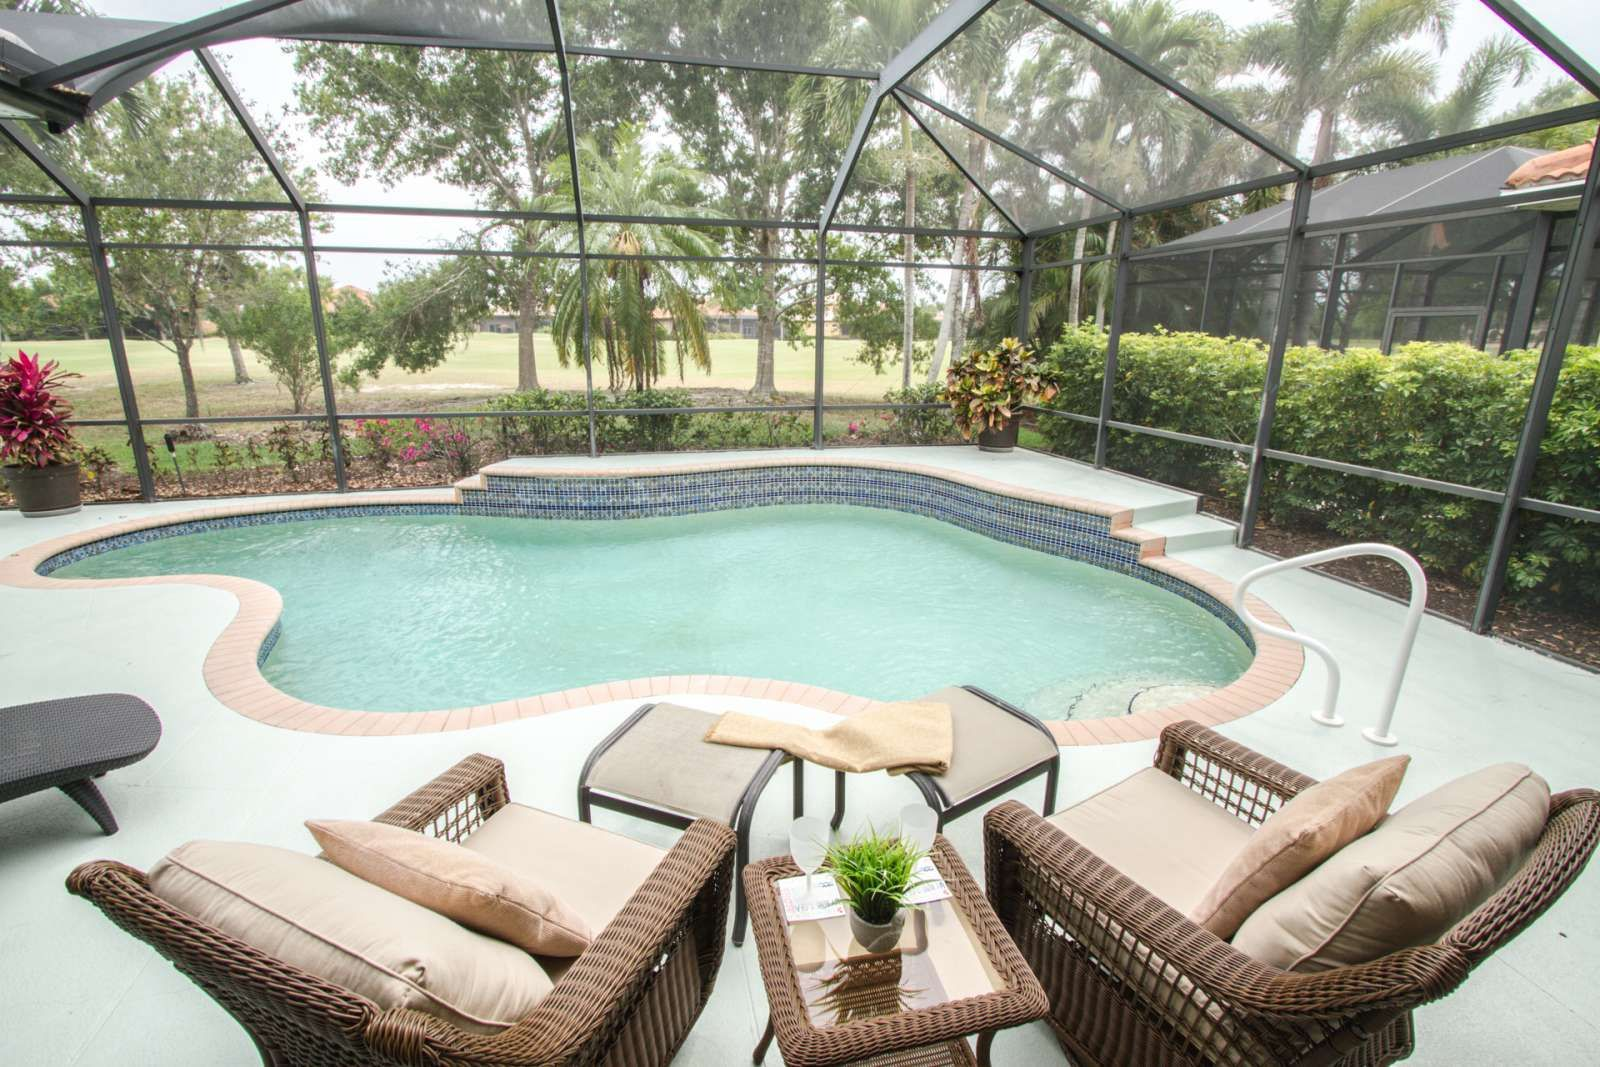 Naples Vacation Rental Gorgeous Masters Reserve Pool Home On Mustang Golf Course W Private Classics Golf Cc Naples Vacation Golf Courses Florida Beach House